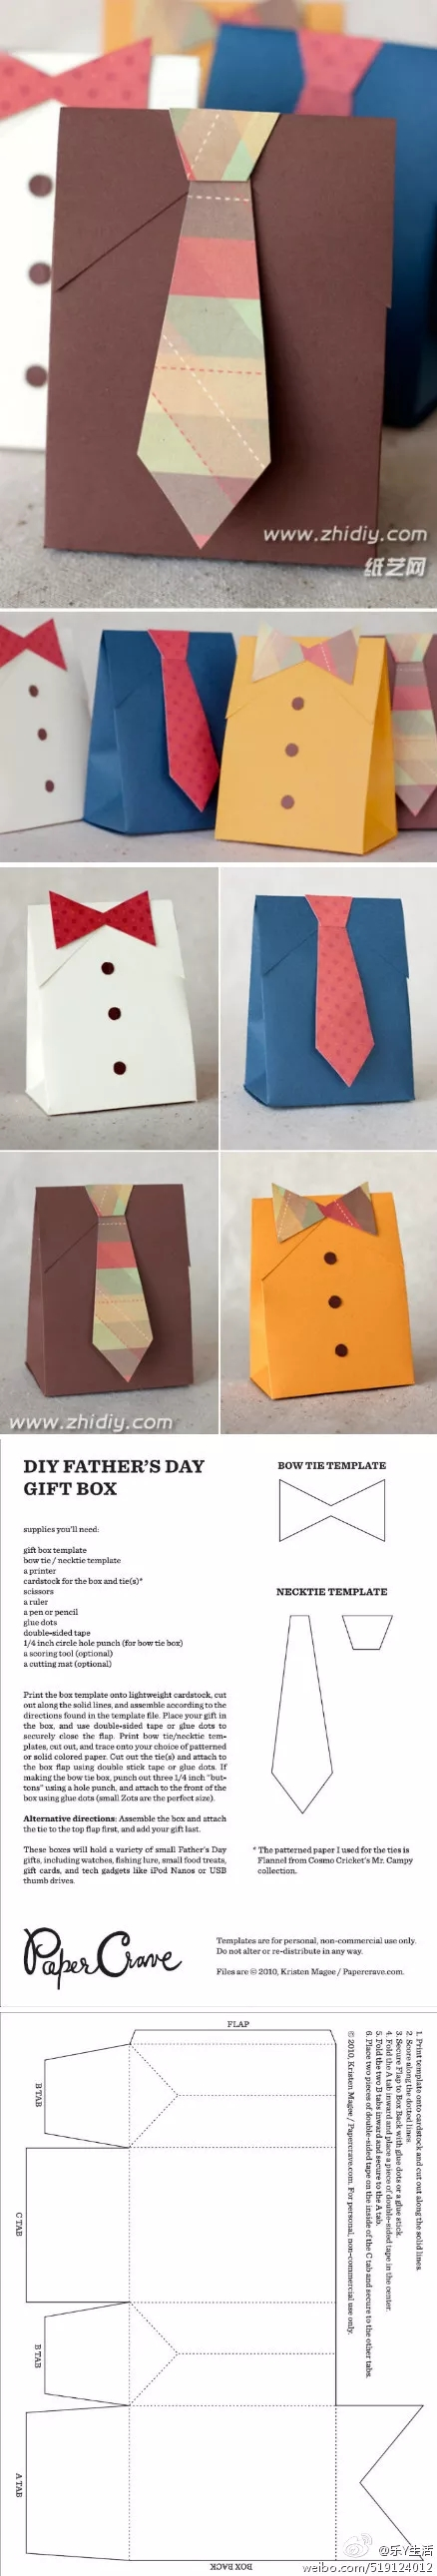 DIY Father's Day Gift Box